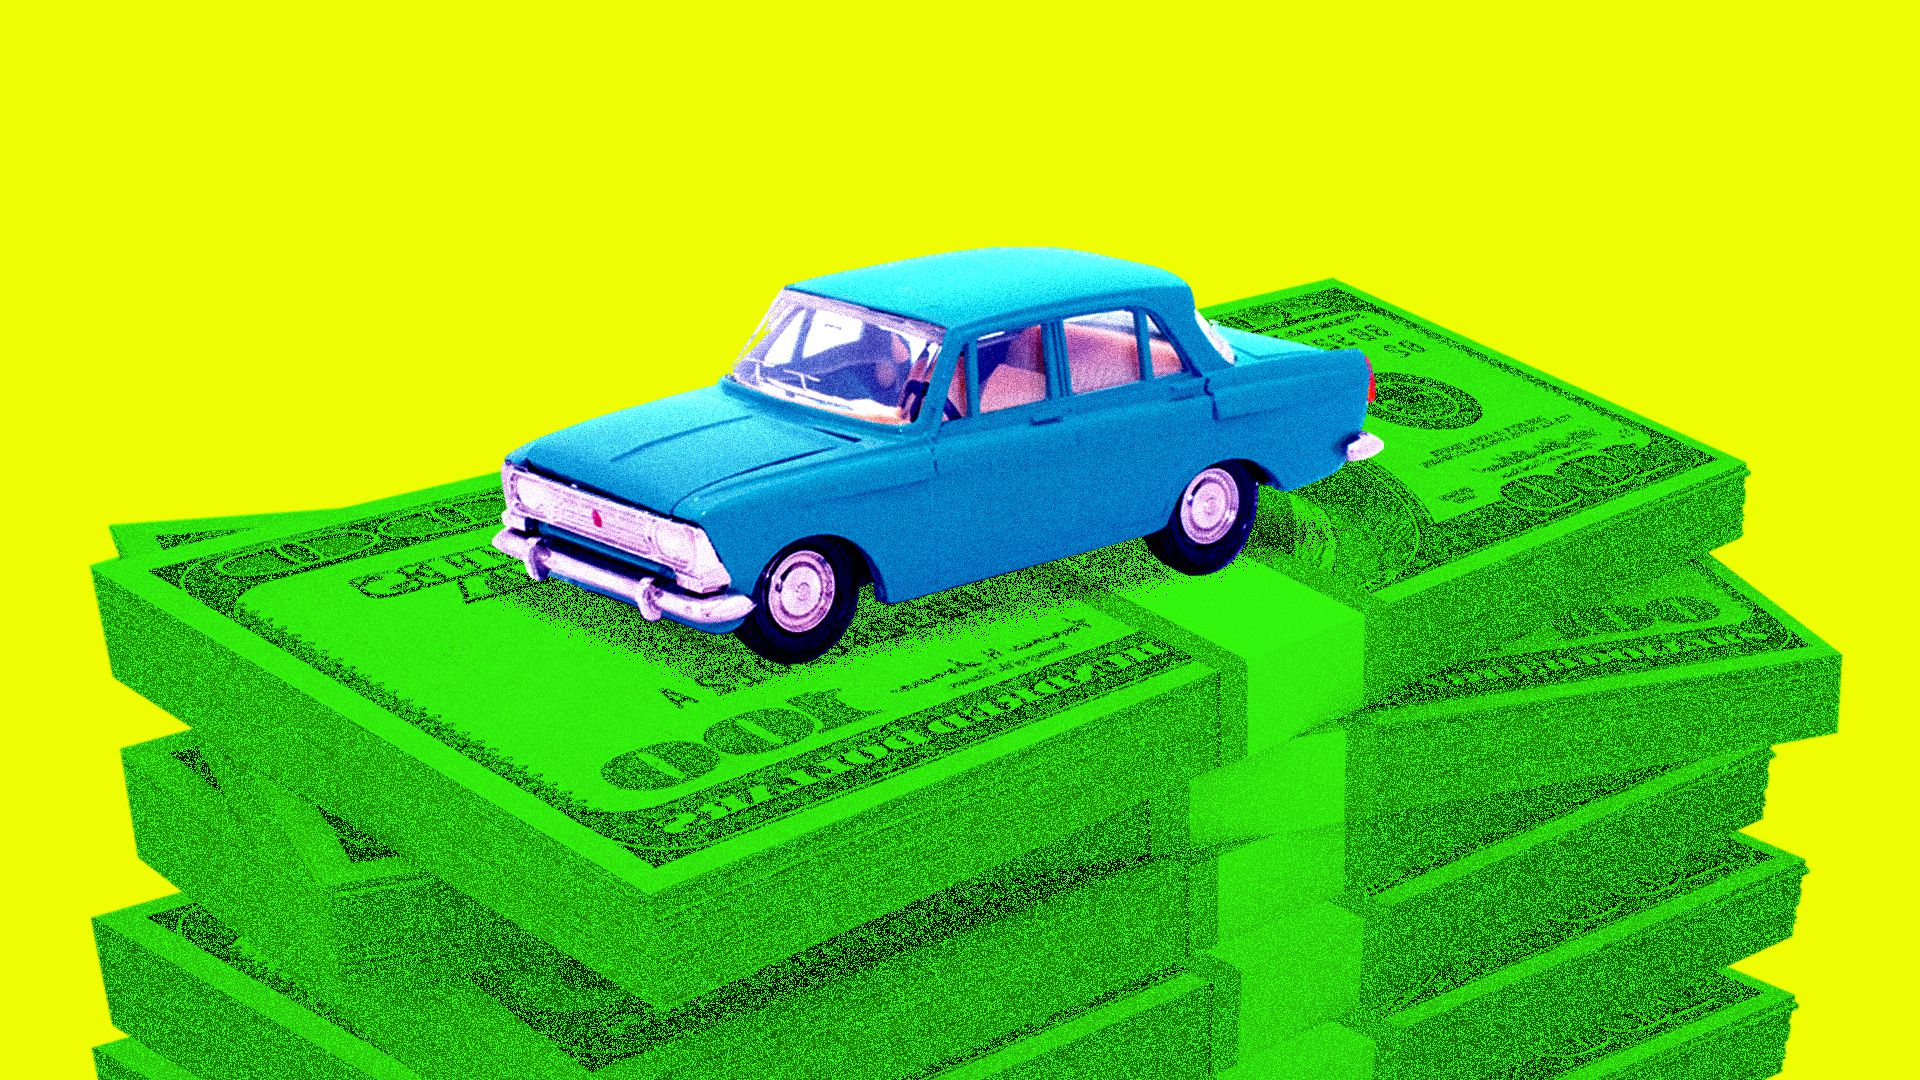 Image of a driverless car sitting atop a pile of cash